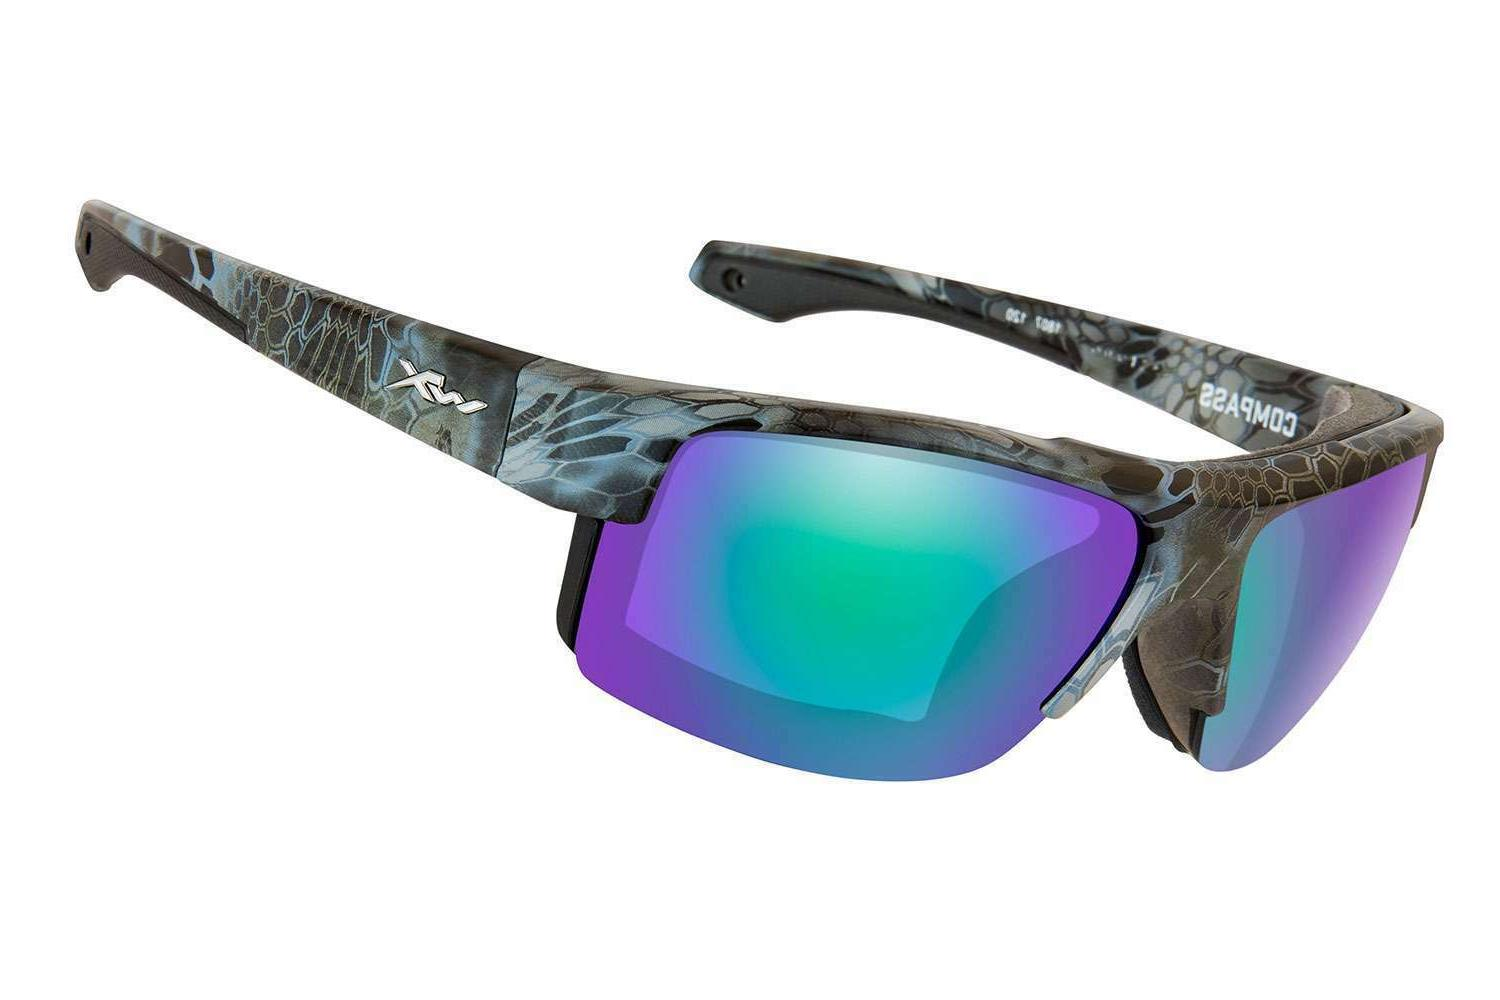 RIVBOS Polarized Sports Sunglasses w/ 100% UVA/UVB Protectio